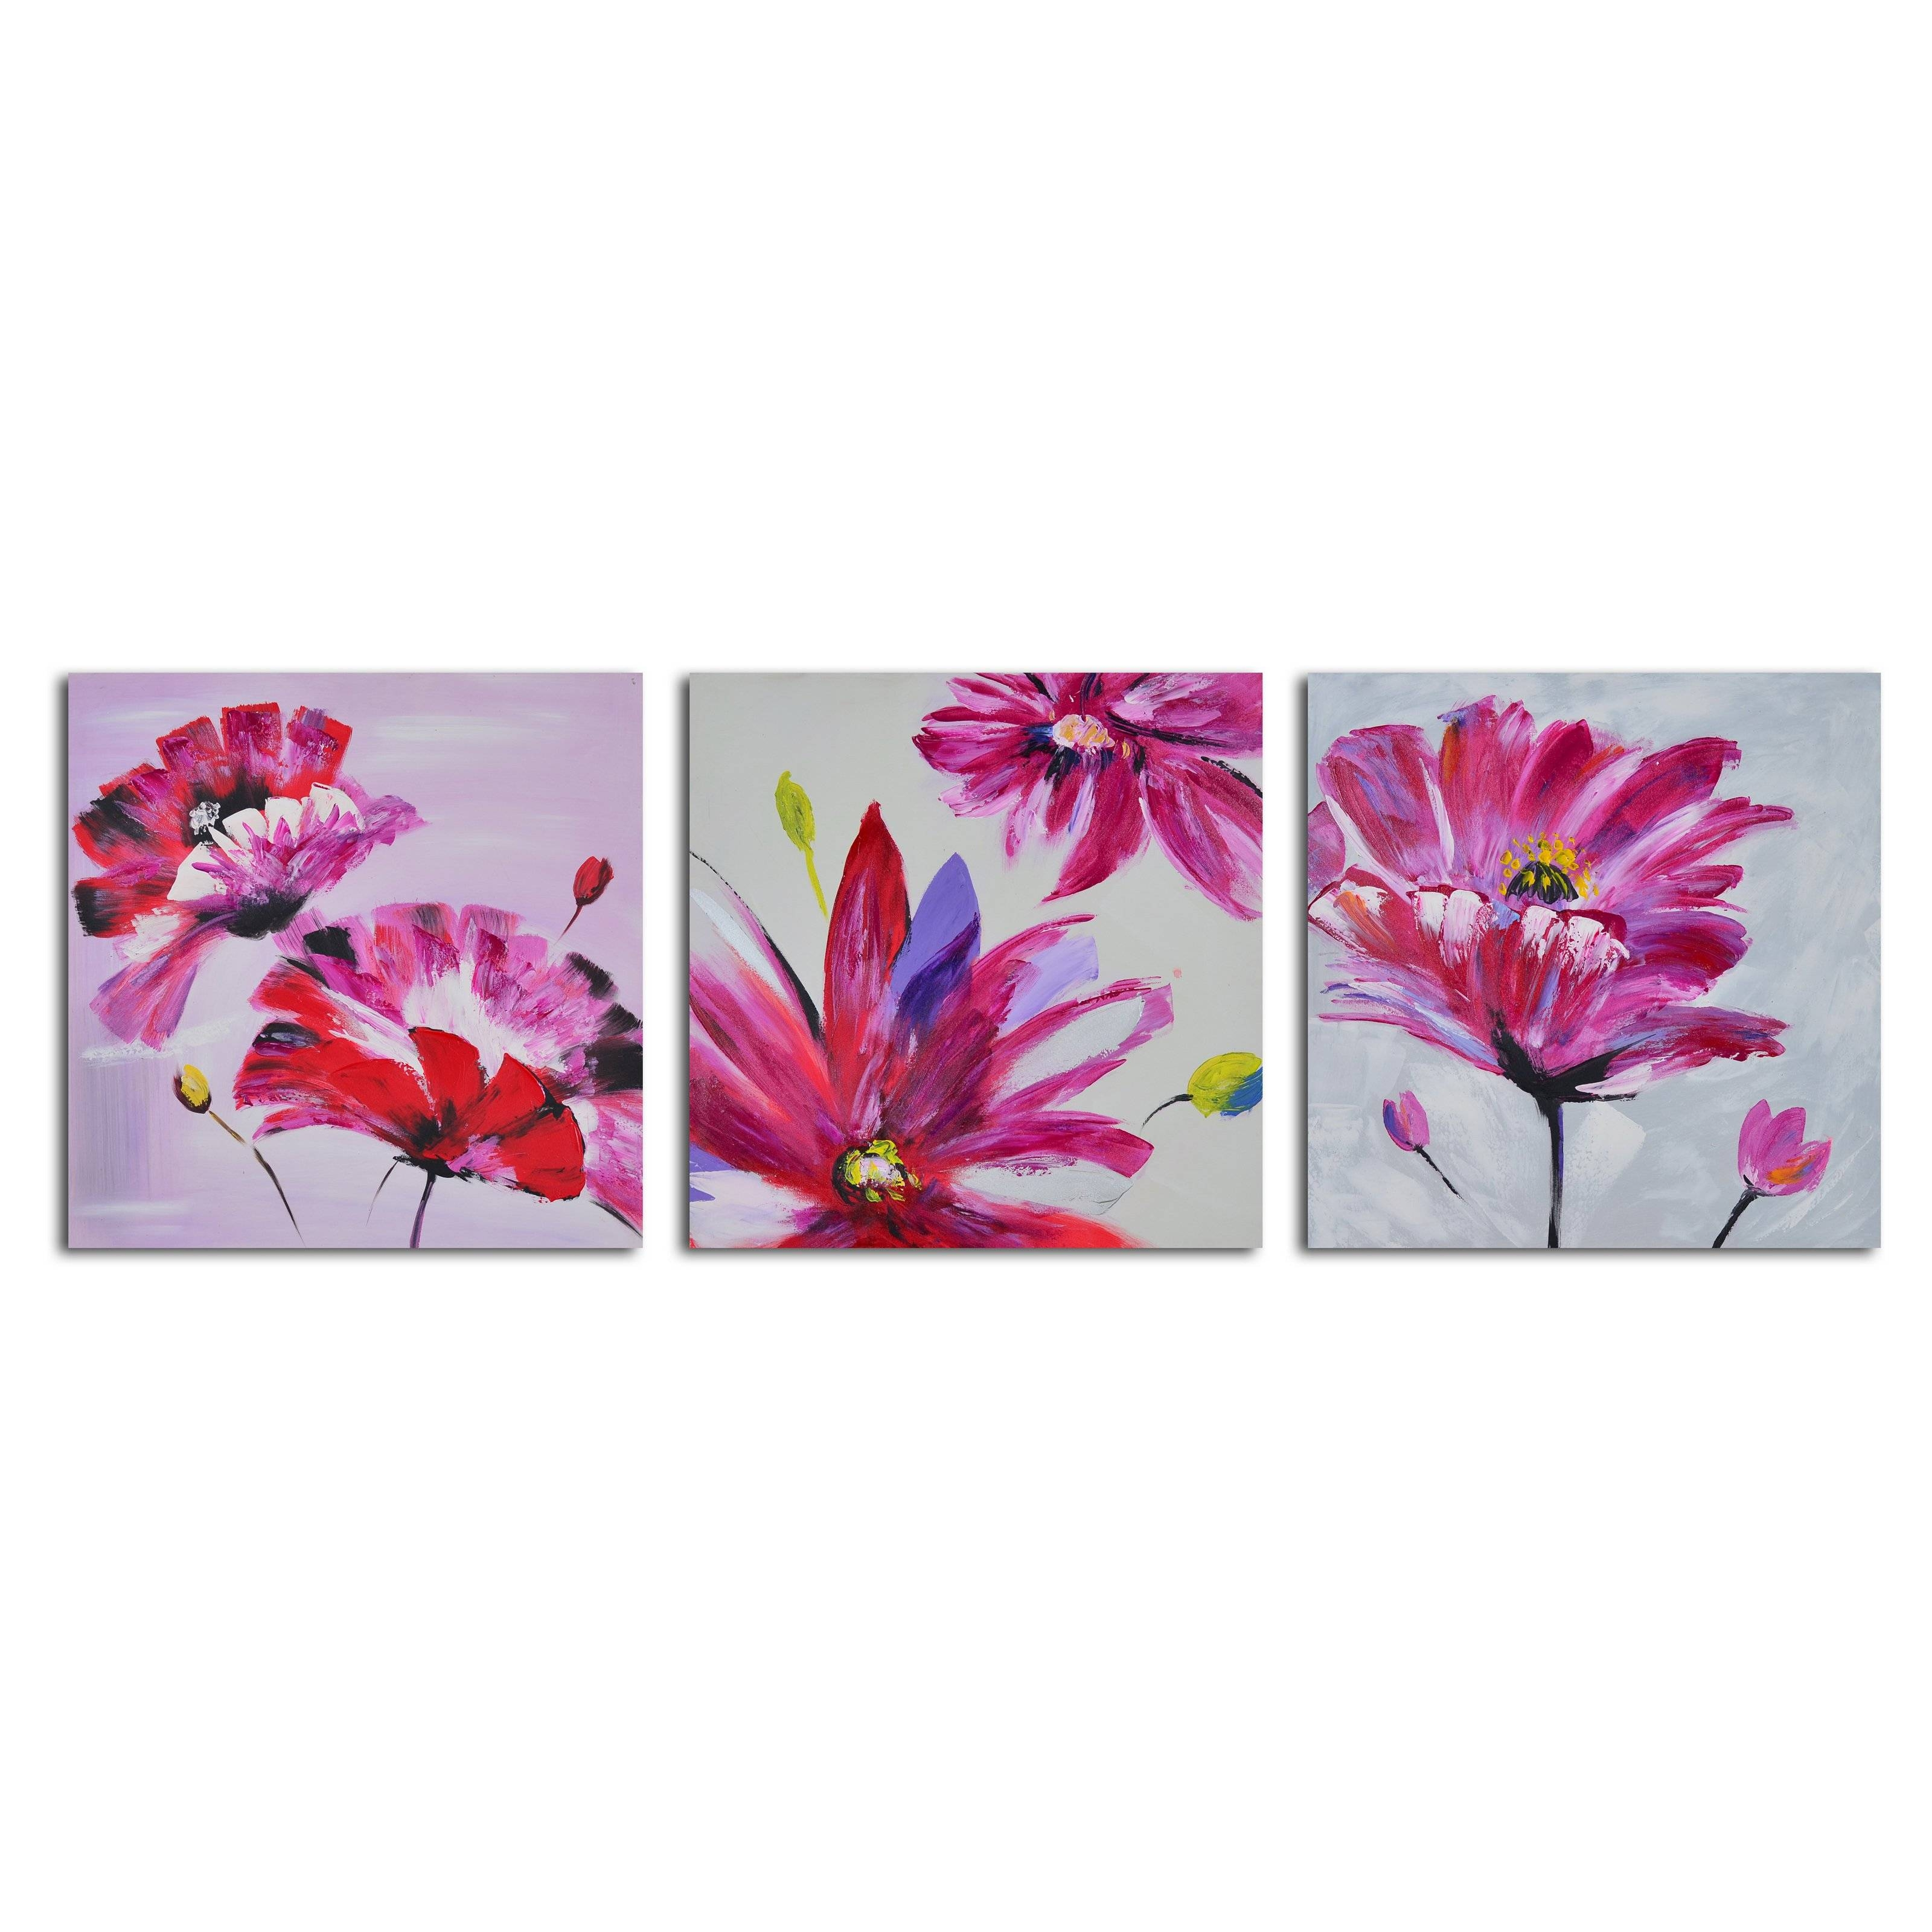 Frenzy Of Fuschia Florals 3 Piece Canvas Wall Art Set | Hayneedle With Regard To Most Recently Released 3 Piece Canvas Wall Art Sets (View 8 of 20)